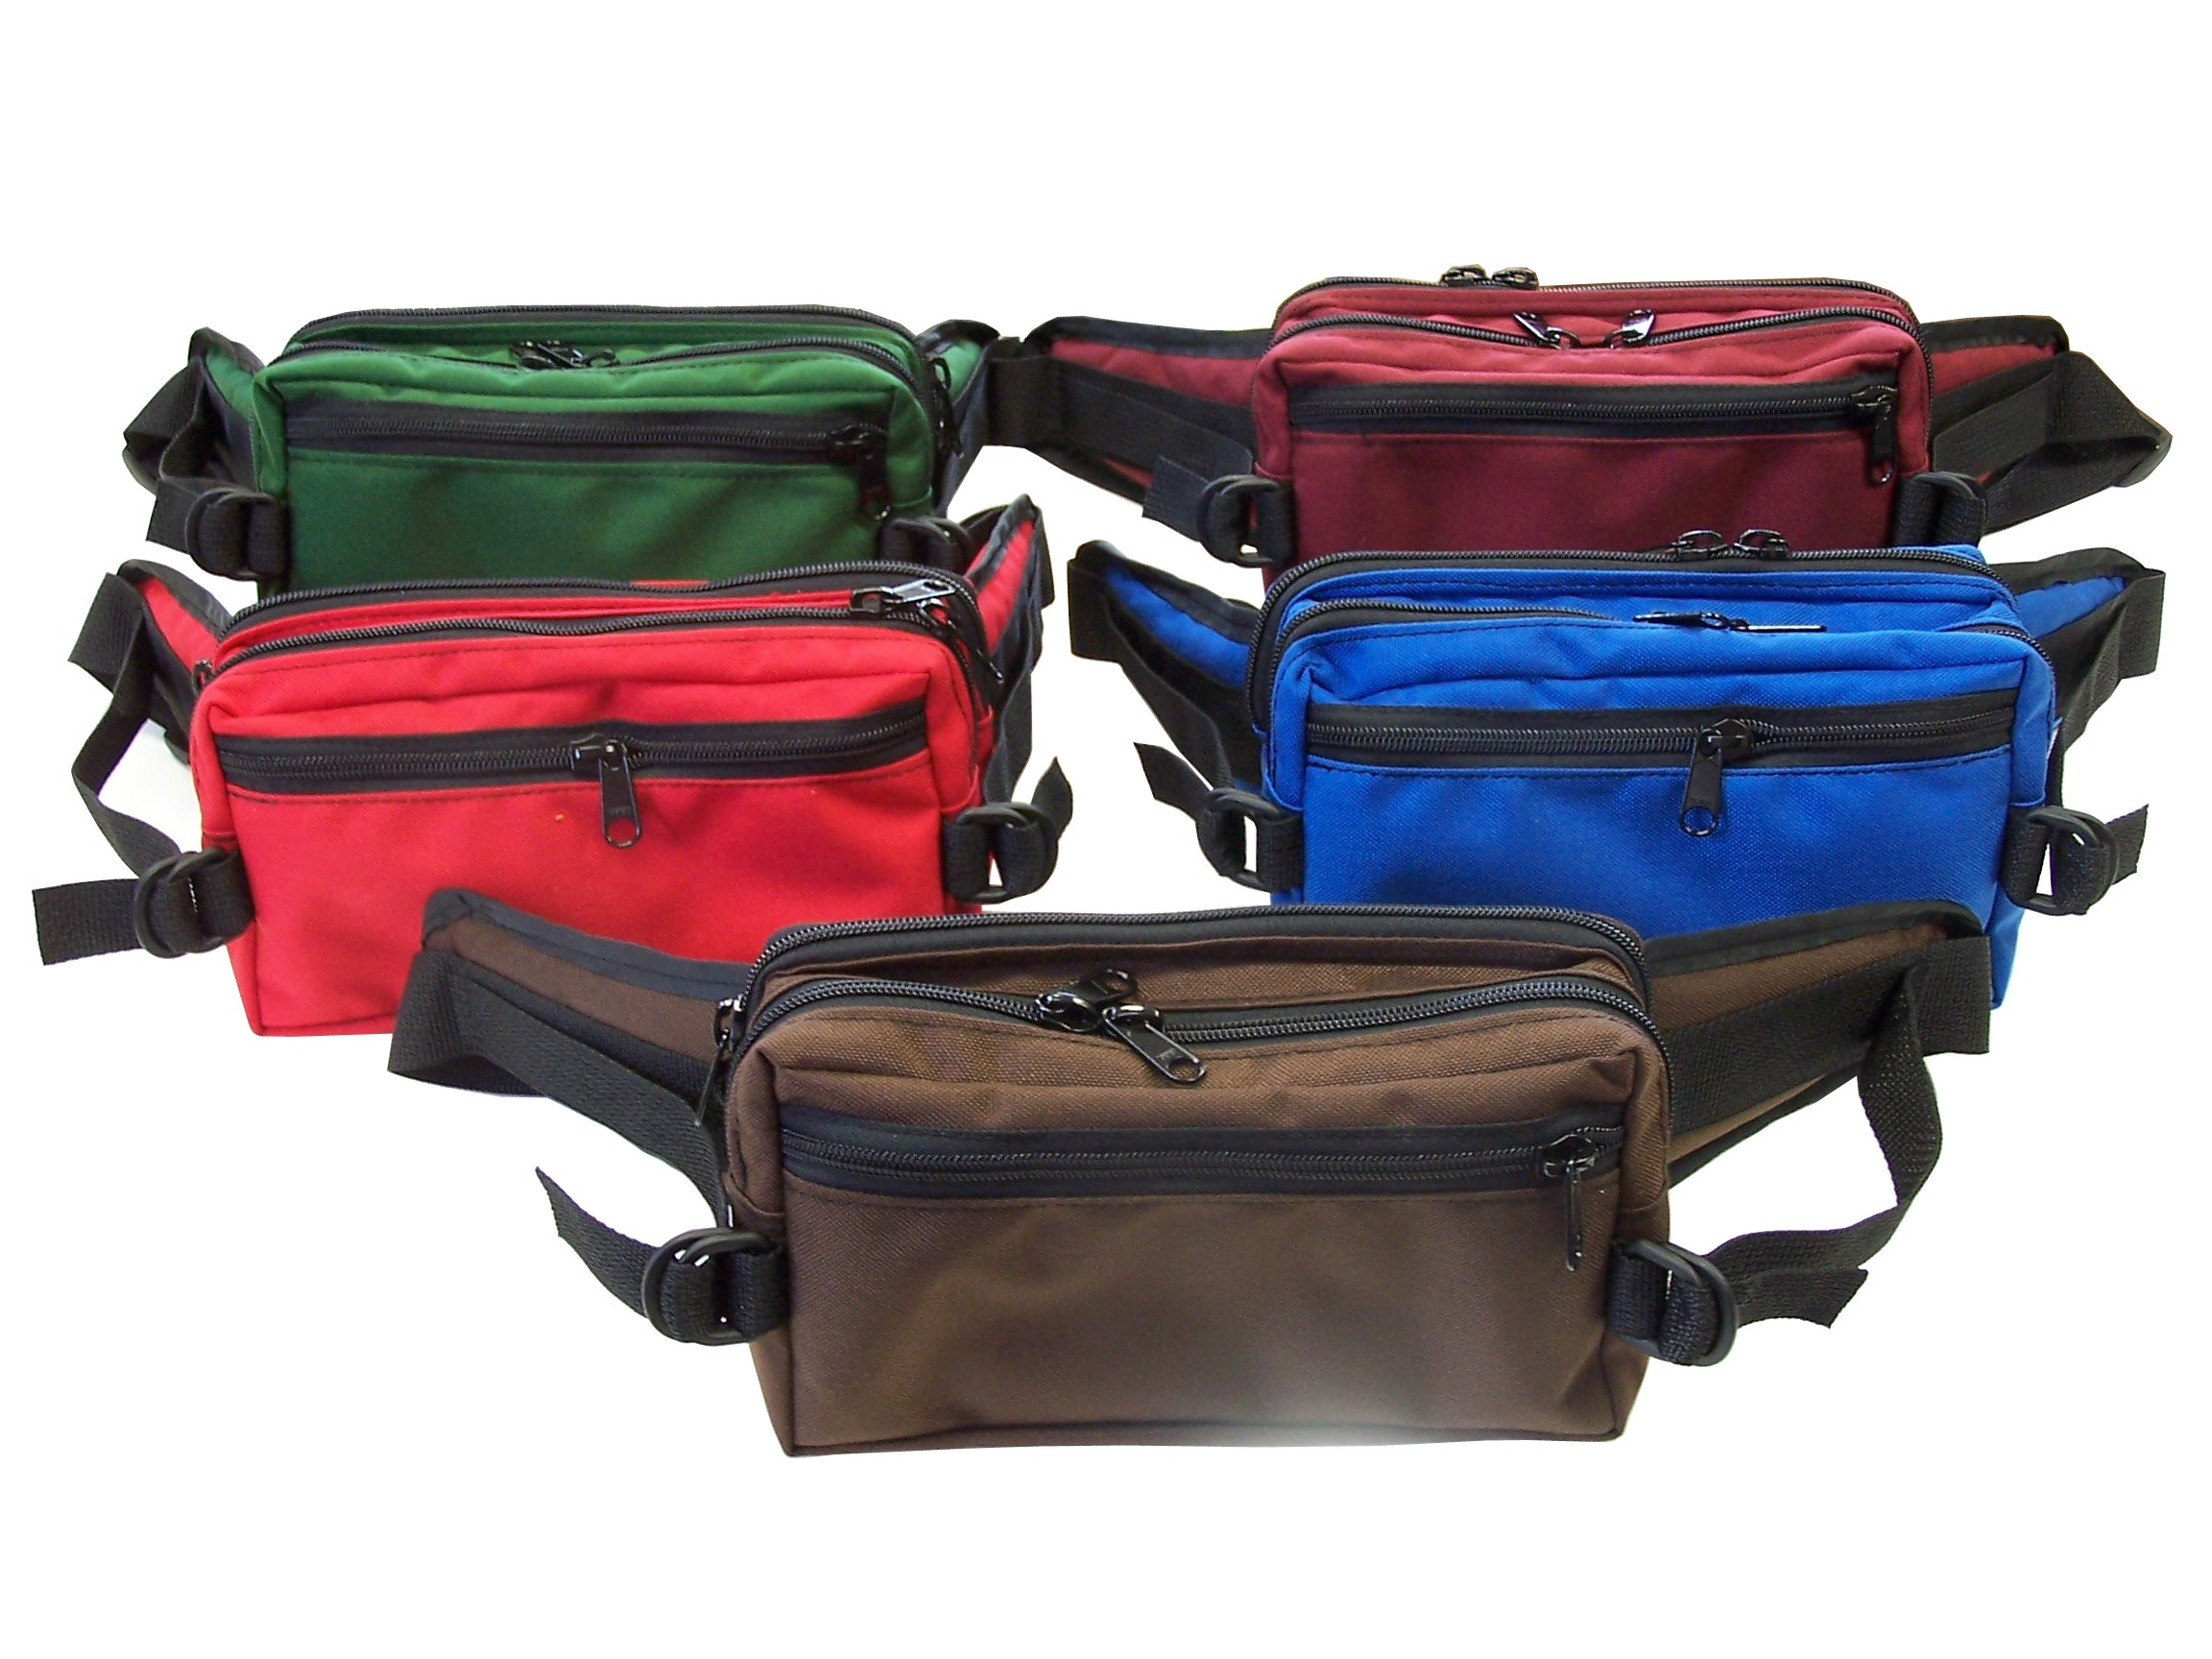 9W x 5H x 4D Large Belt Bag w/2 Zippered Pockets - Made to Order